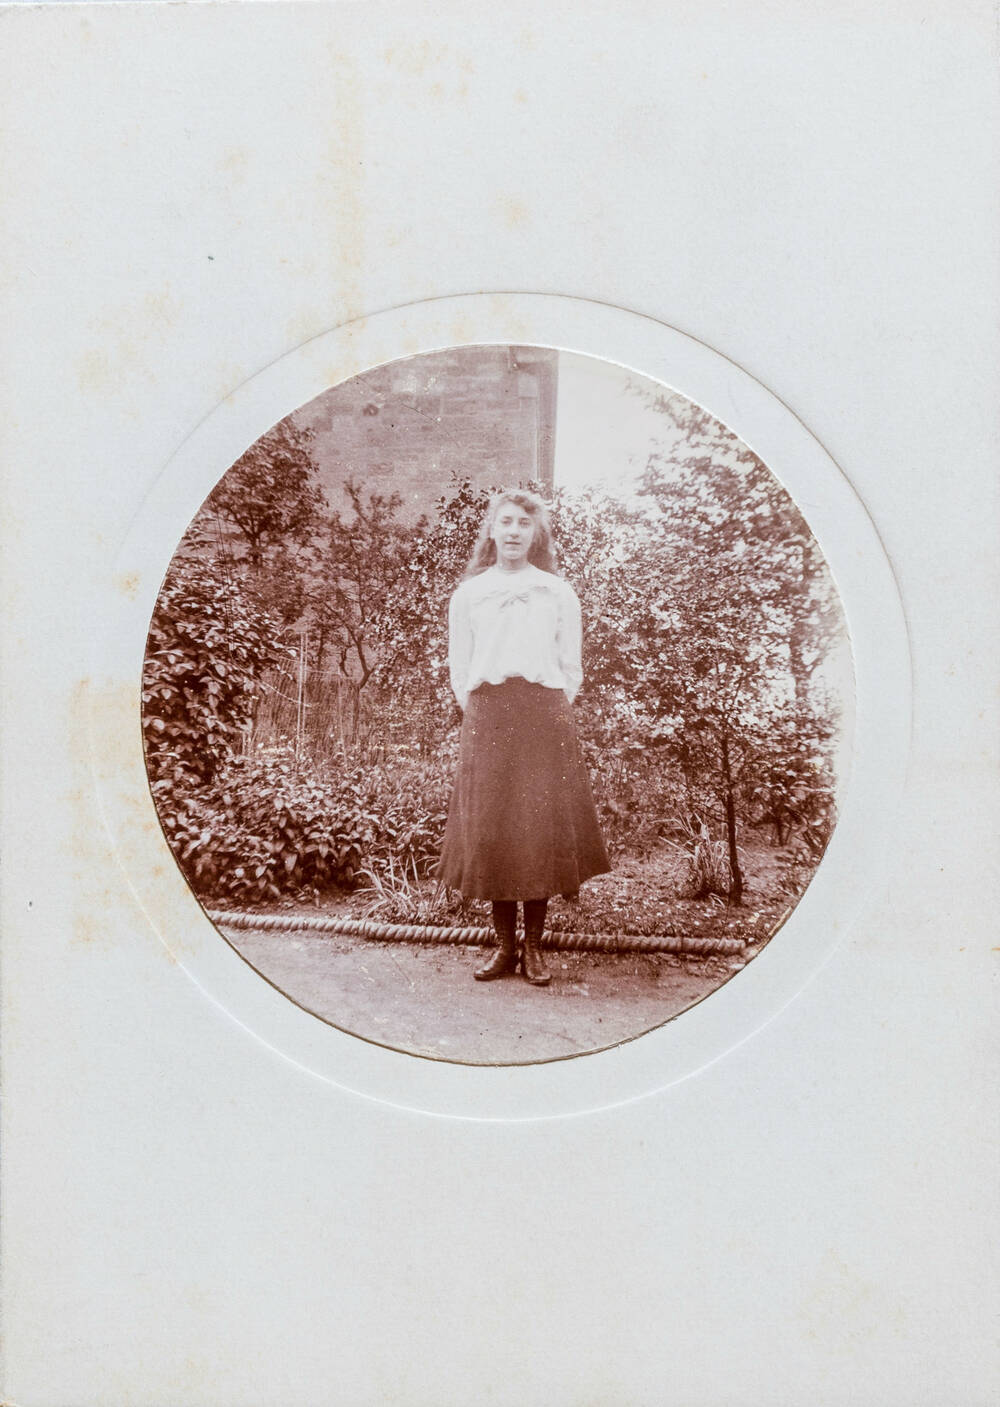 A circular black and white photo of the same young woman wearing the same white top and dark skirt standing in the same park.